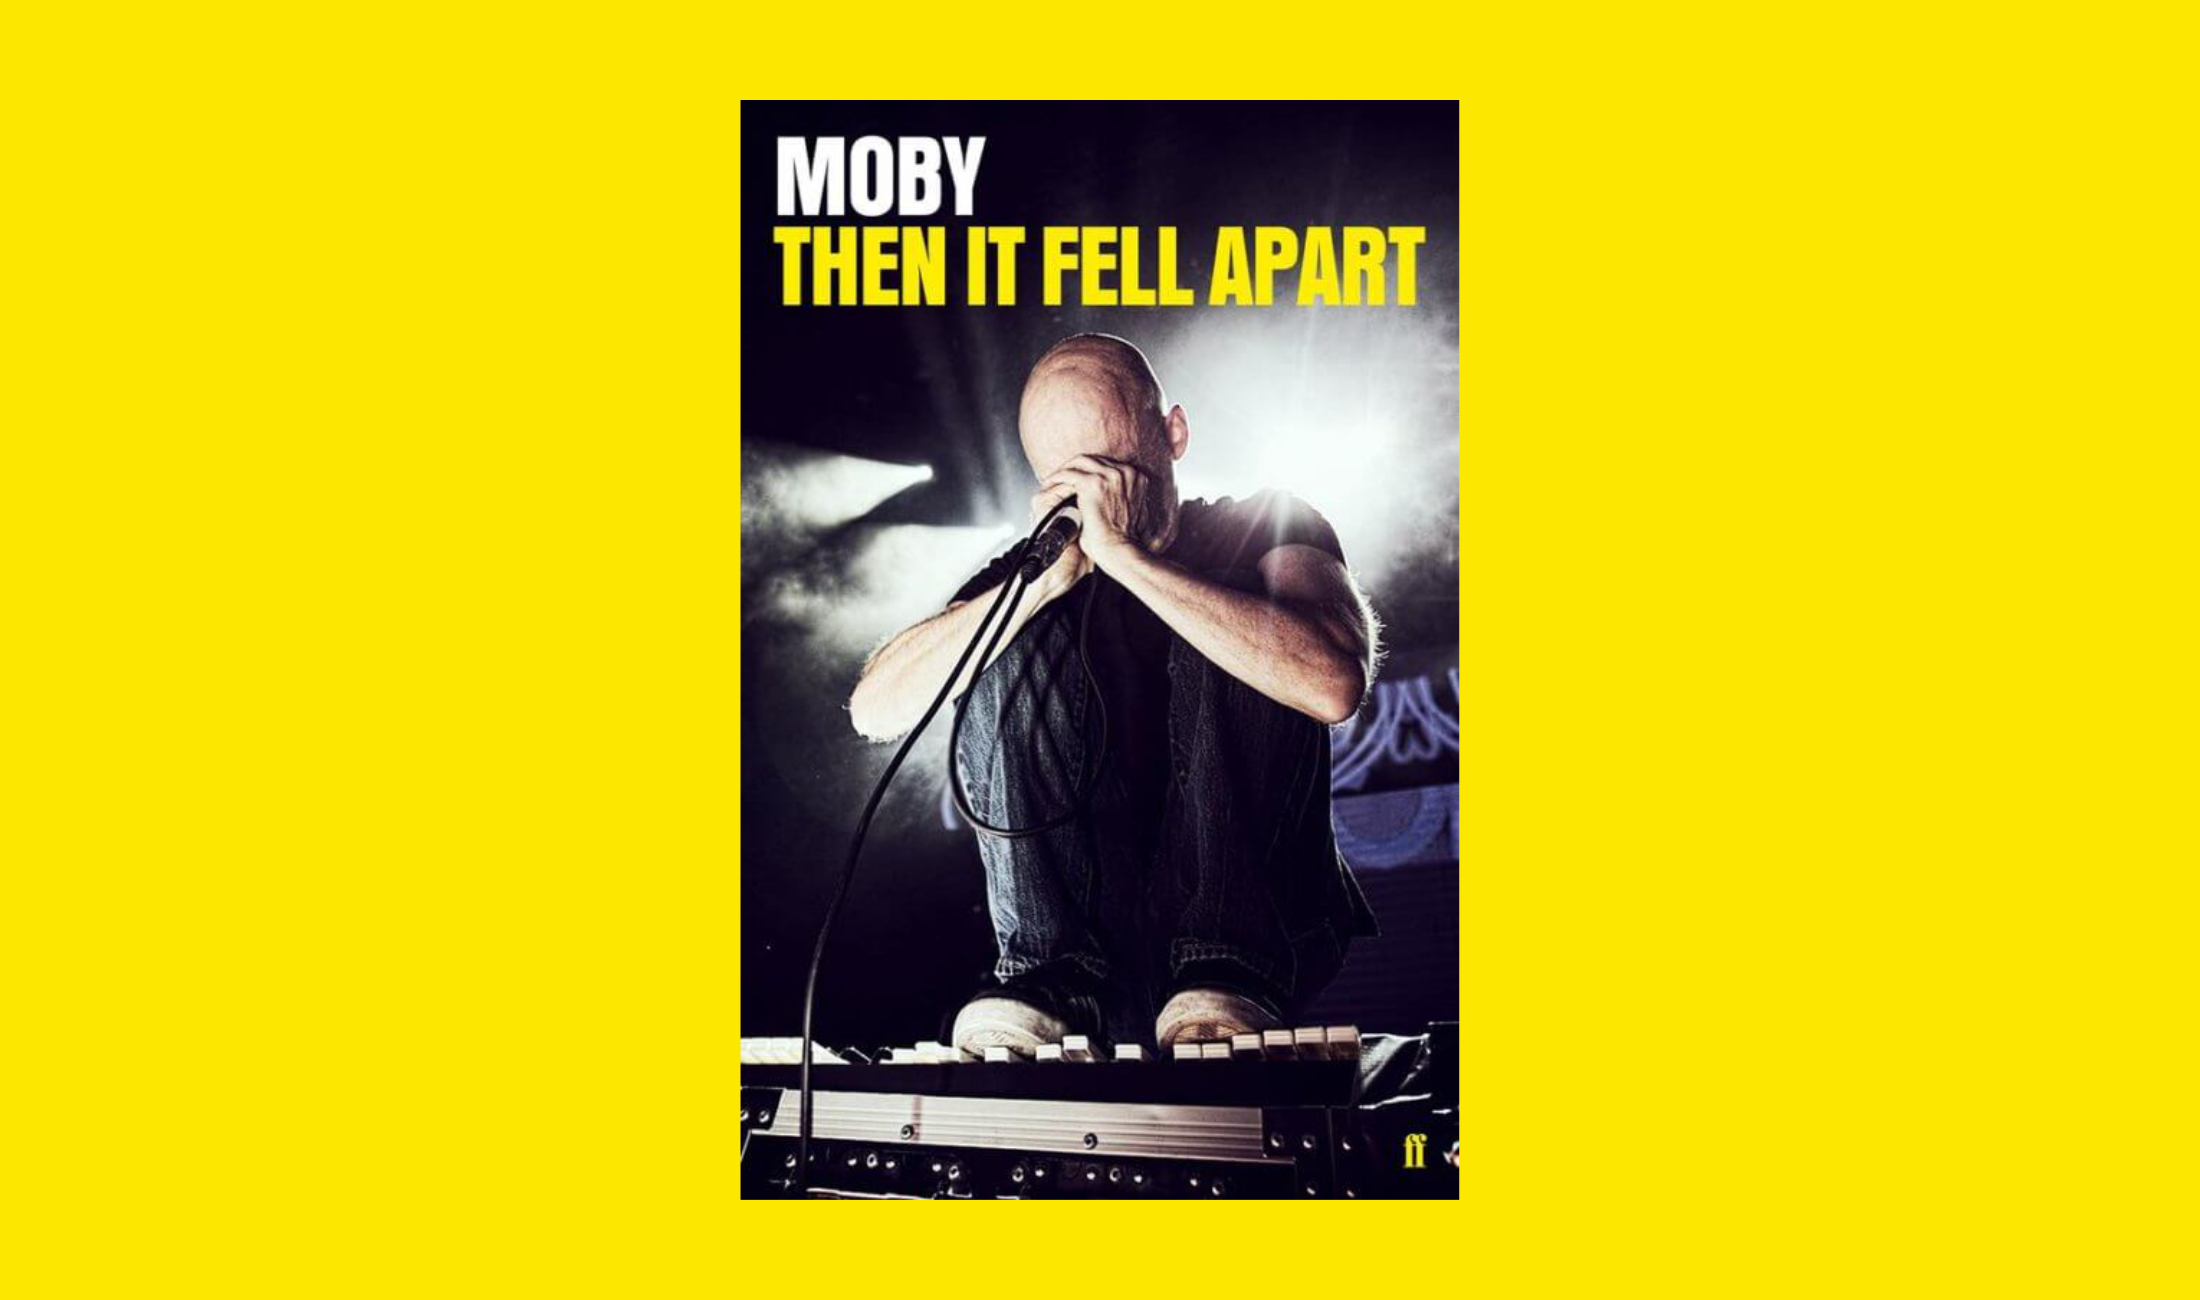 Moby kündigt zweites autobiographisches Werk an: 'Then It Fell Apart'